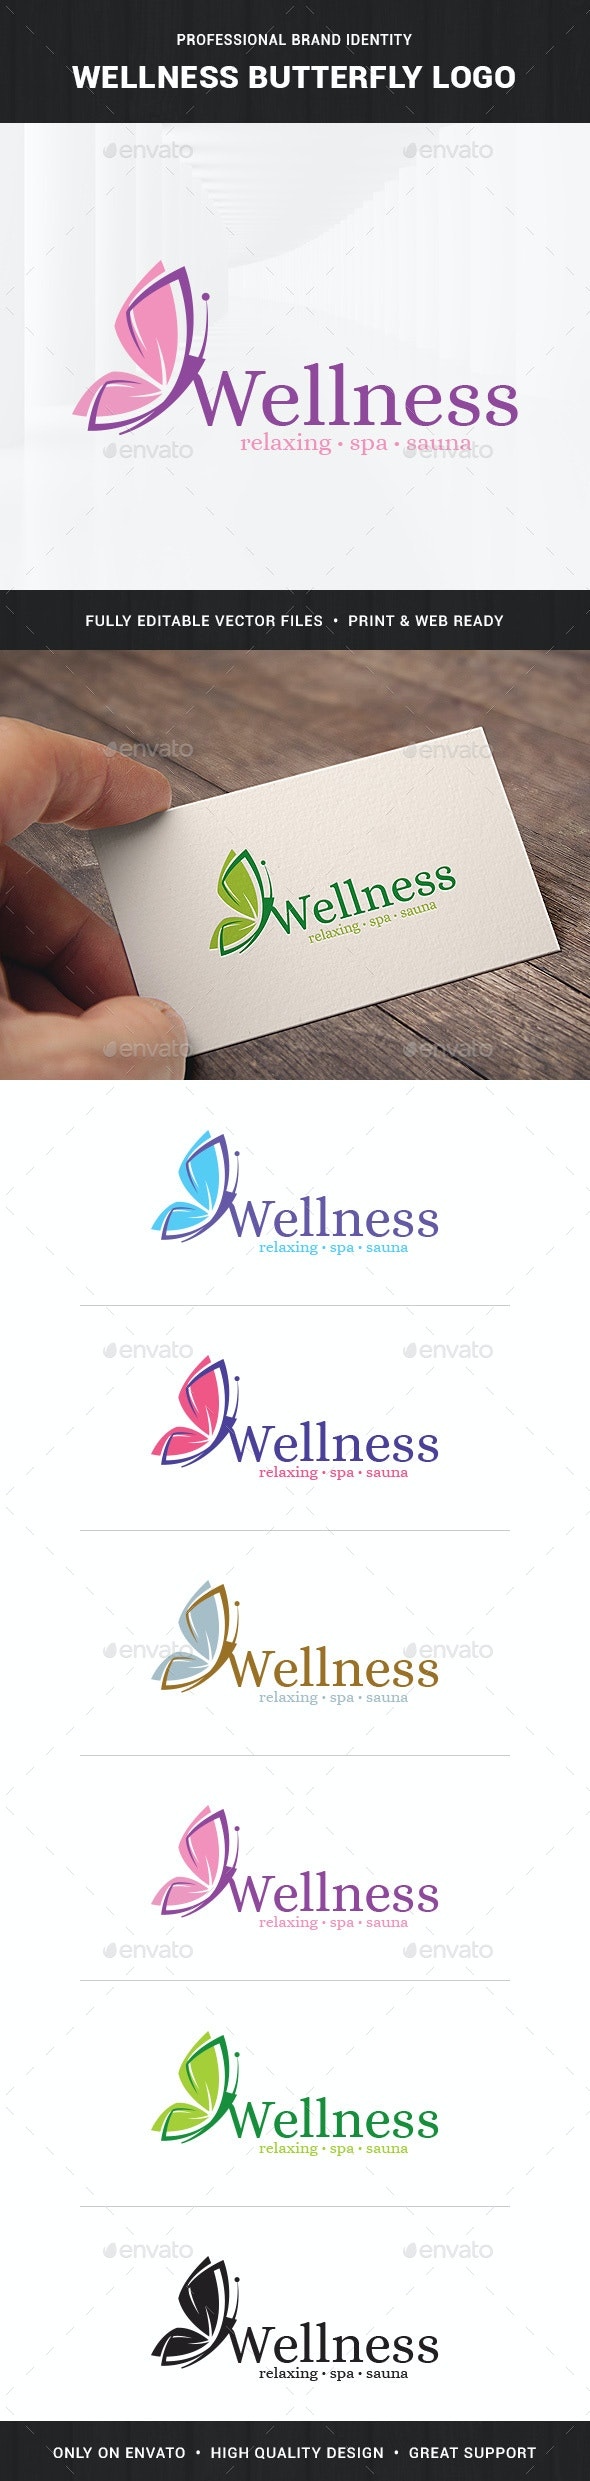 Wellness - Butterfly Logo Template - Animals Logo Templates